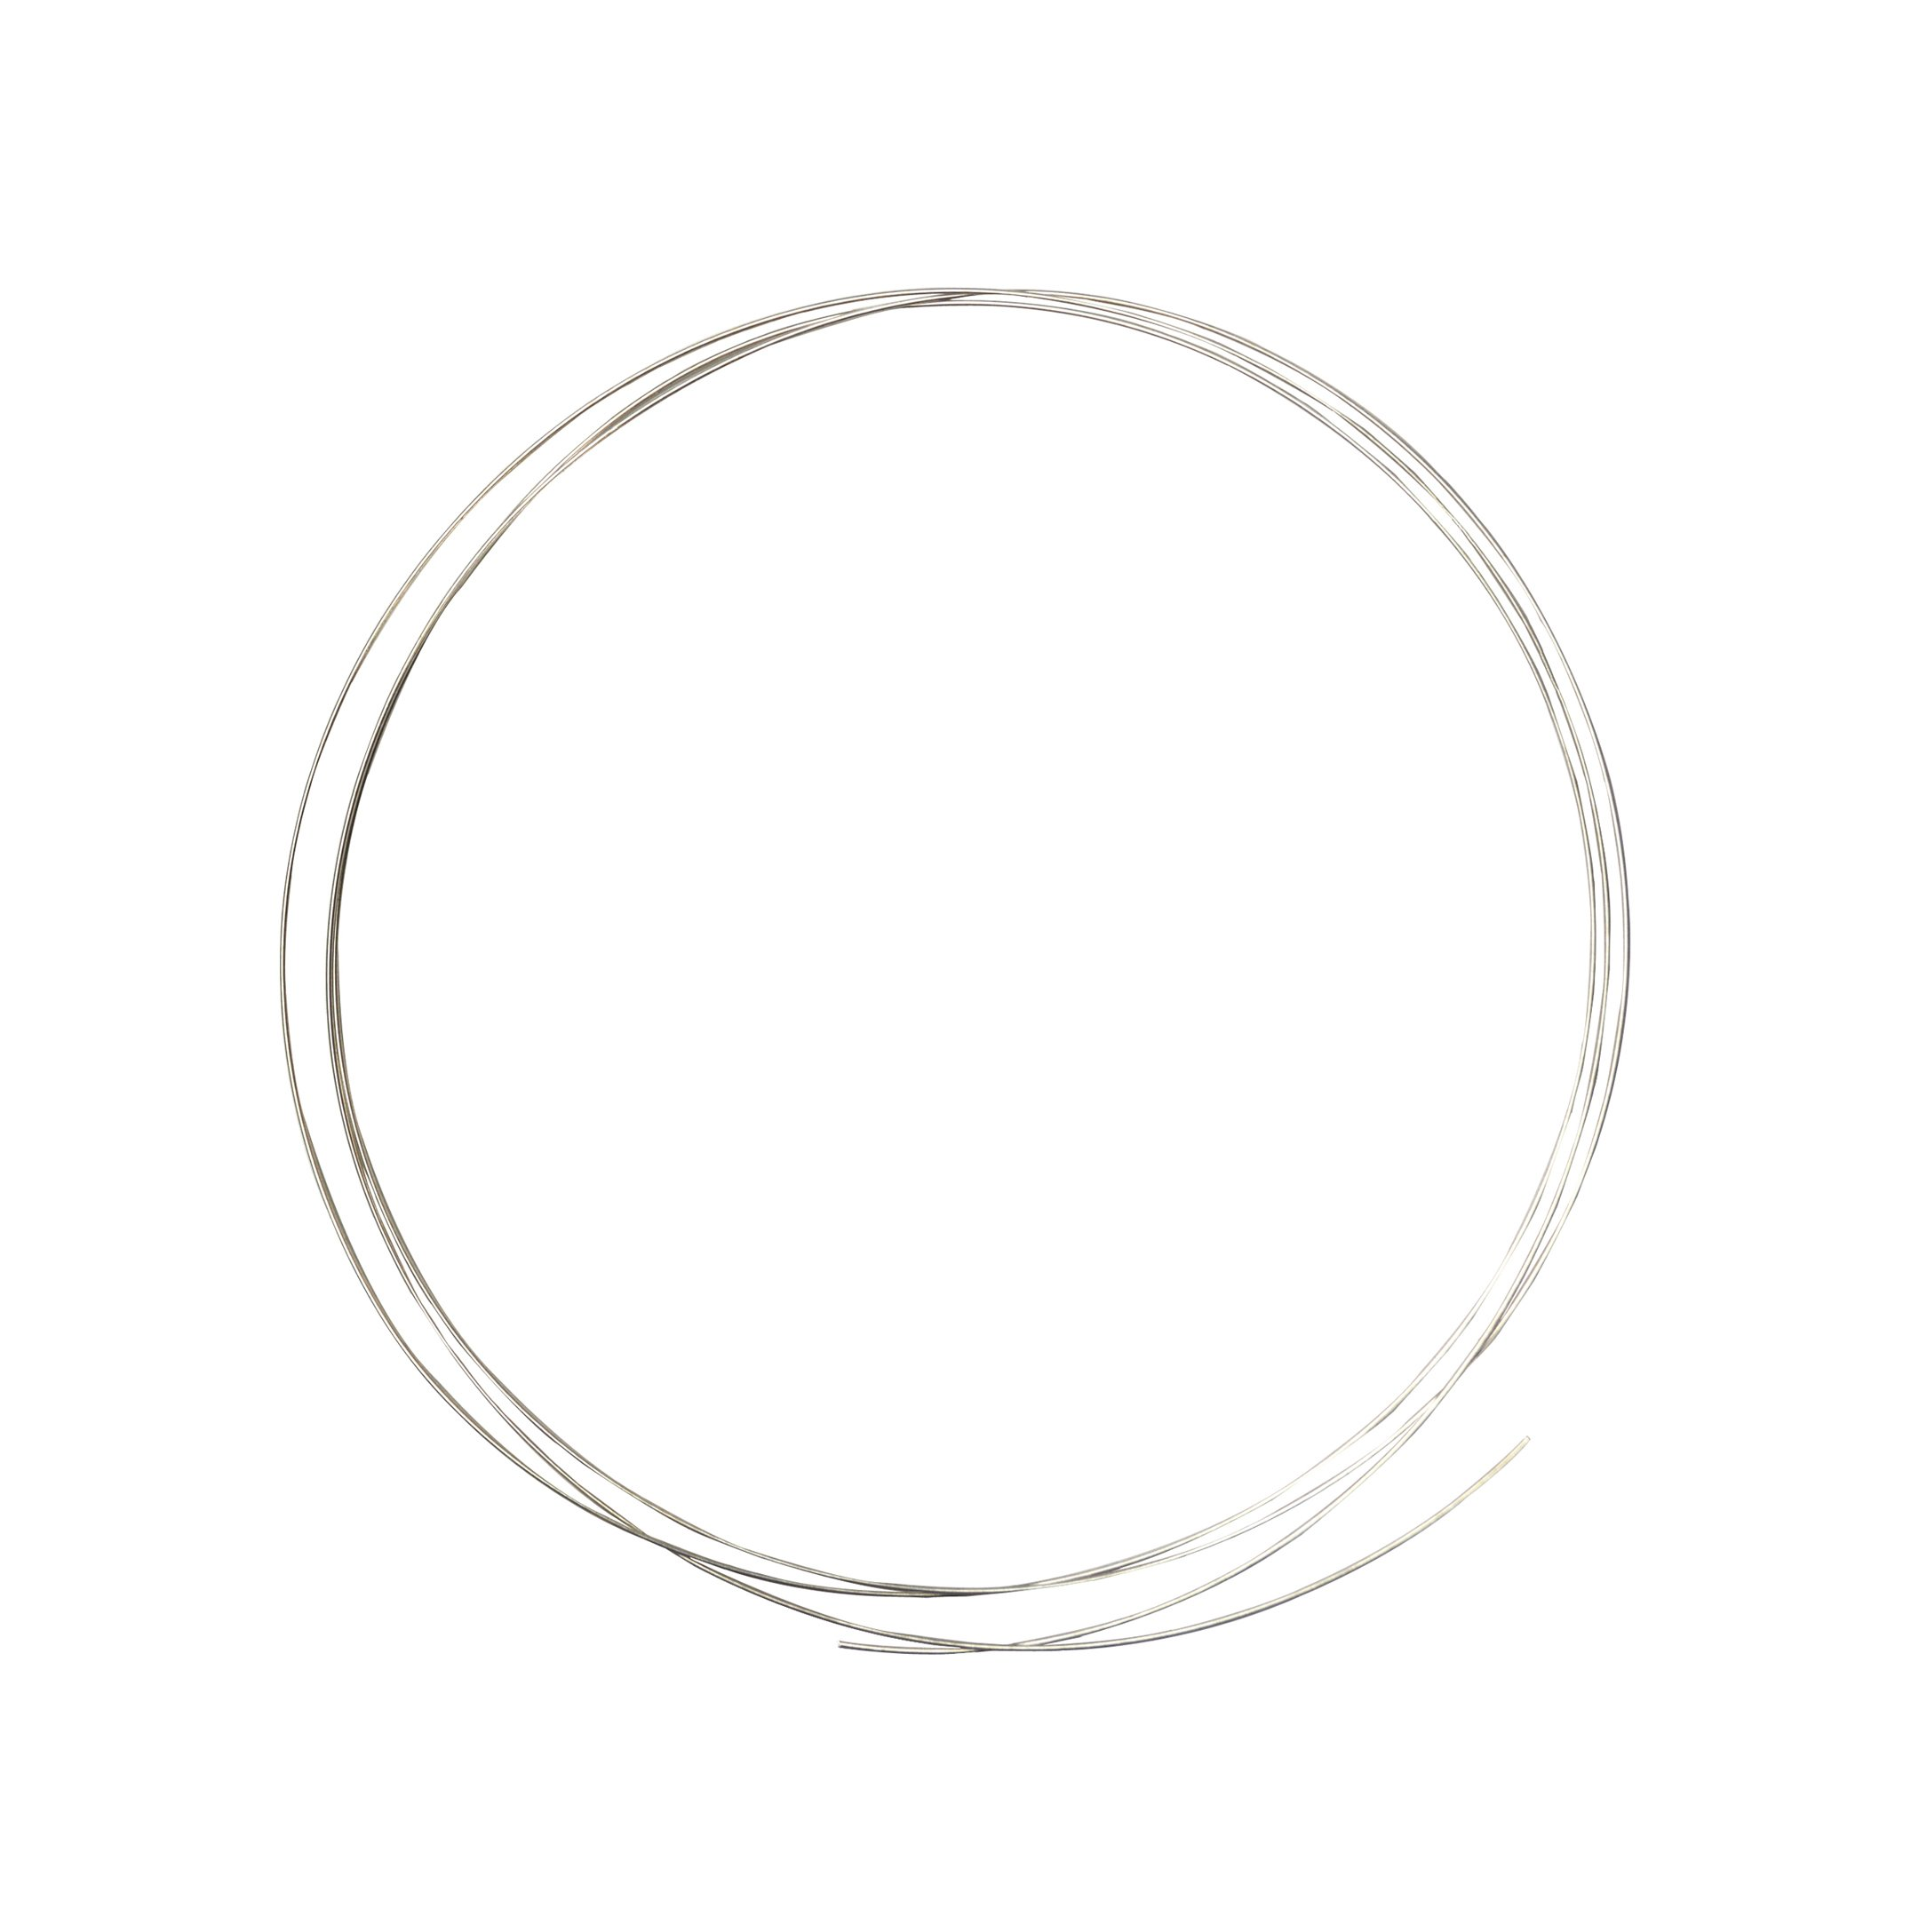 5 Feet SS75 Hard 1/4 T. oz Silver Solder Wire Tool for Jewelry Making and Repair